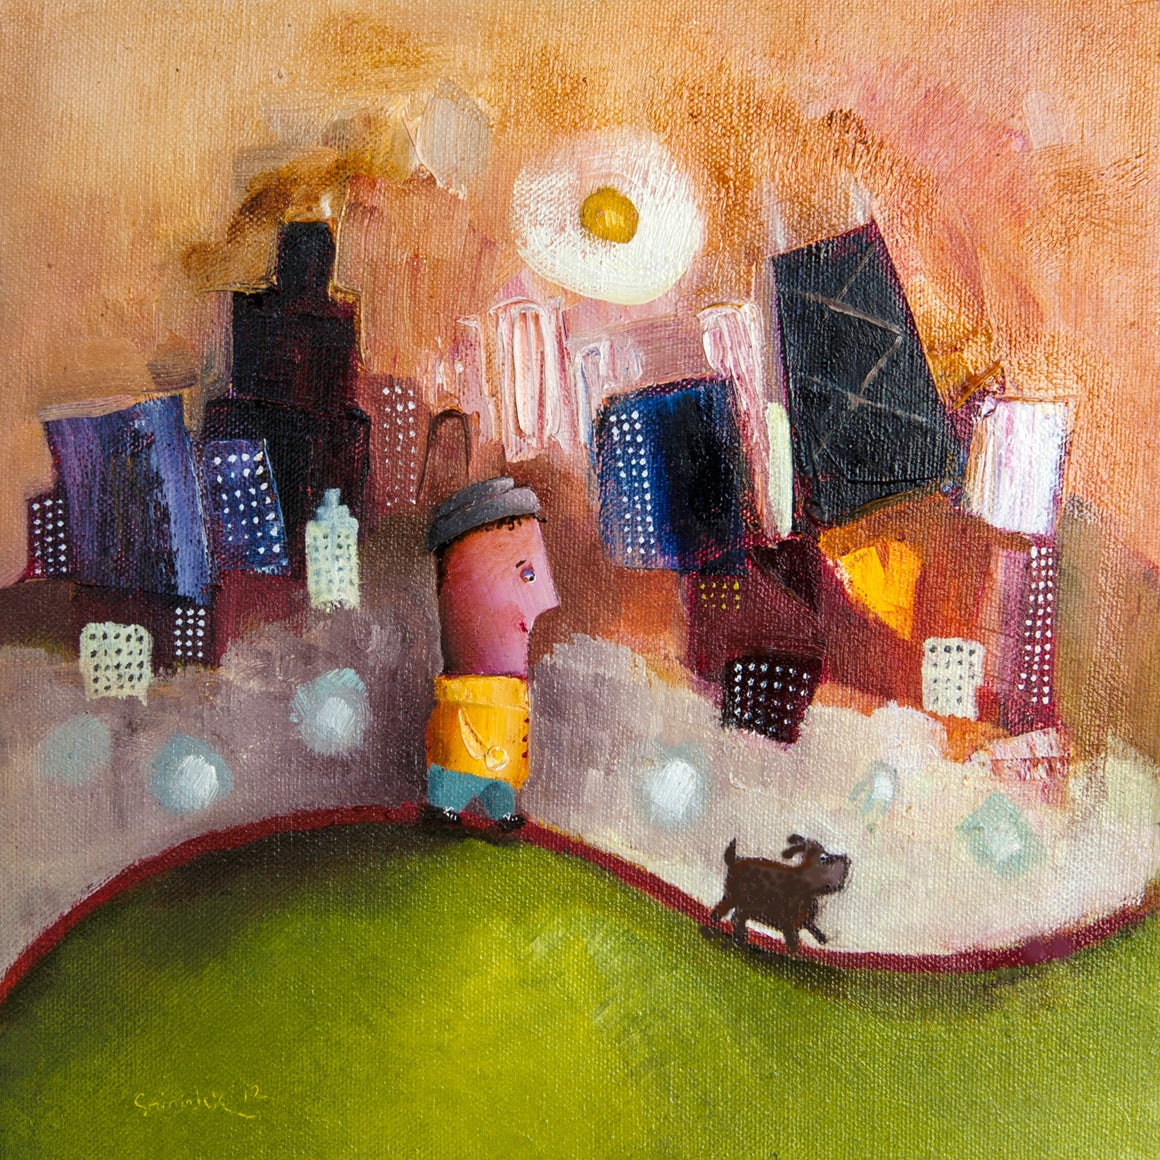 print of painting by artist joe smigielski featuring a boy walking a dog in Grant Park Chicago.